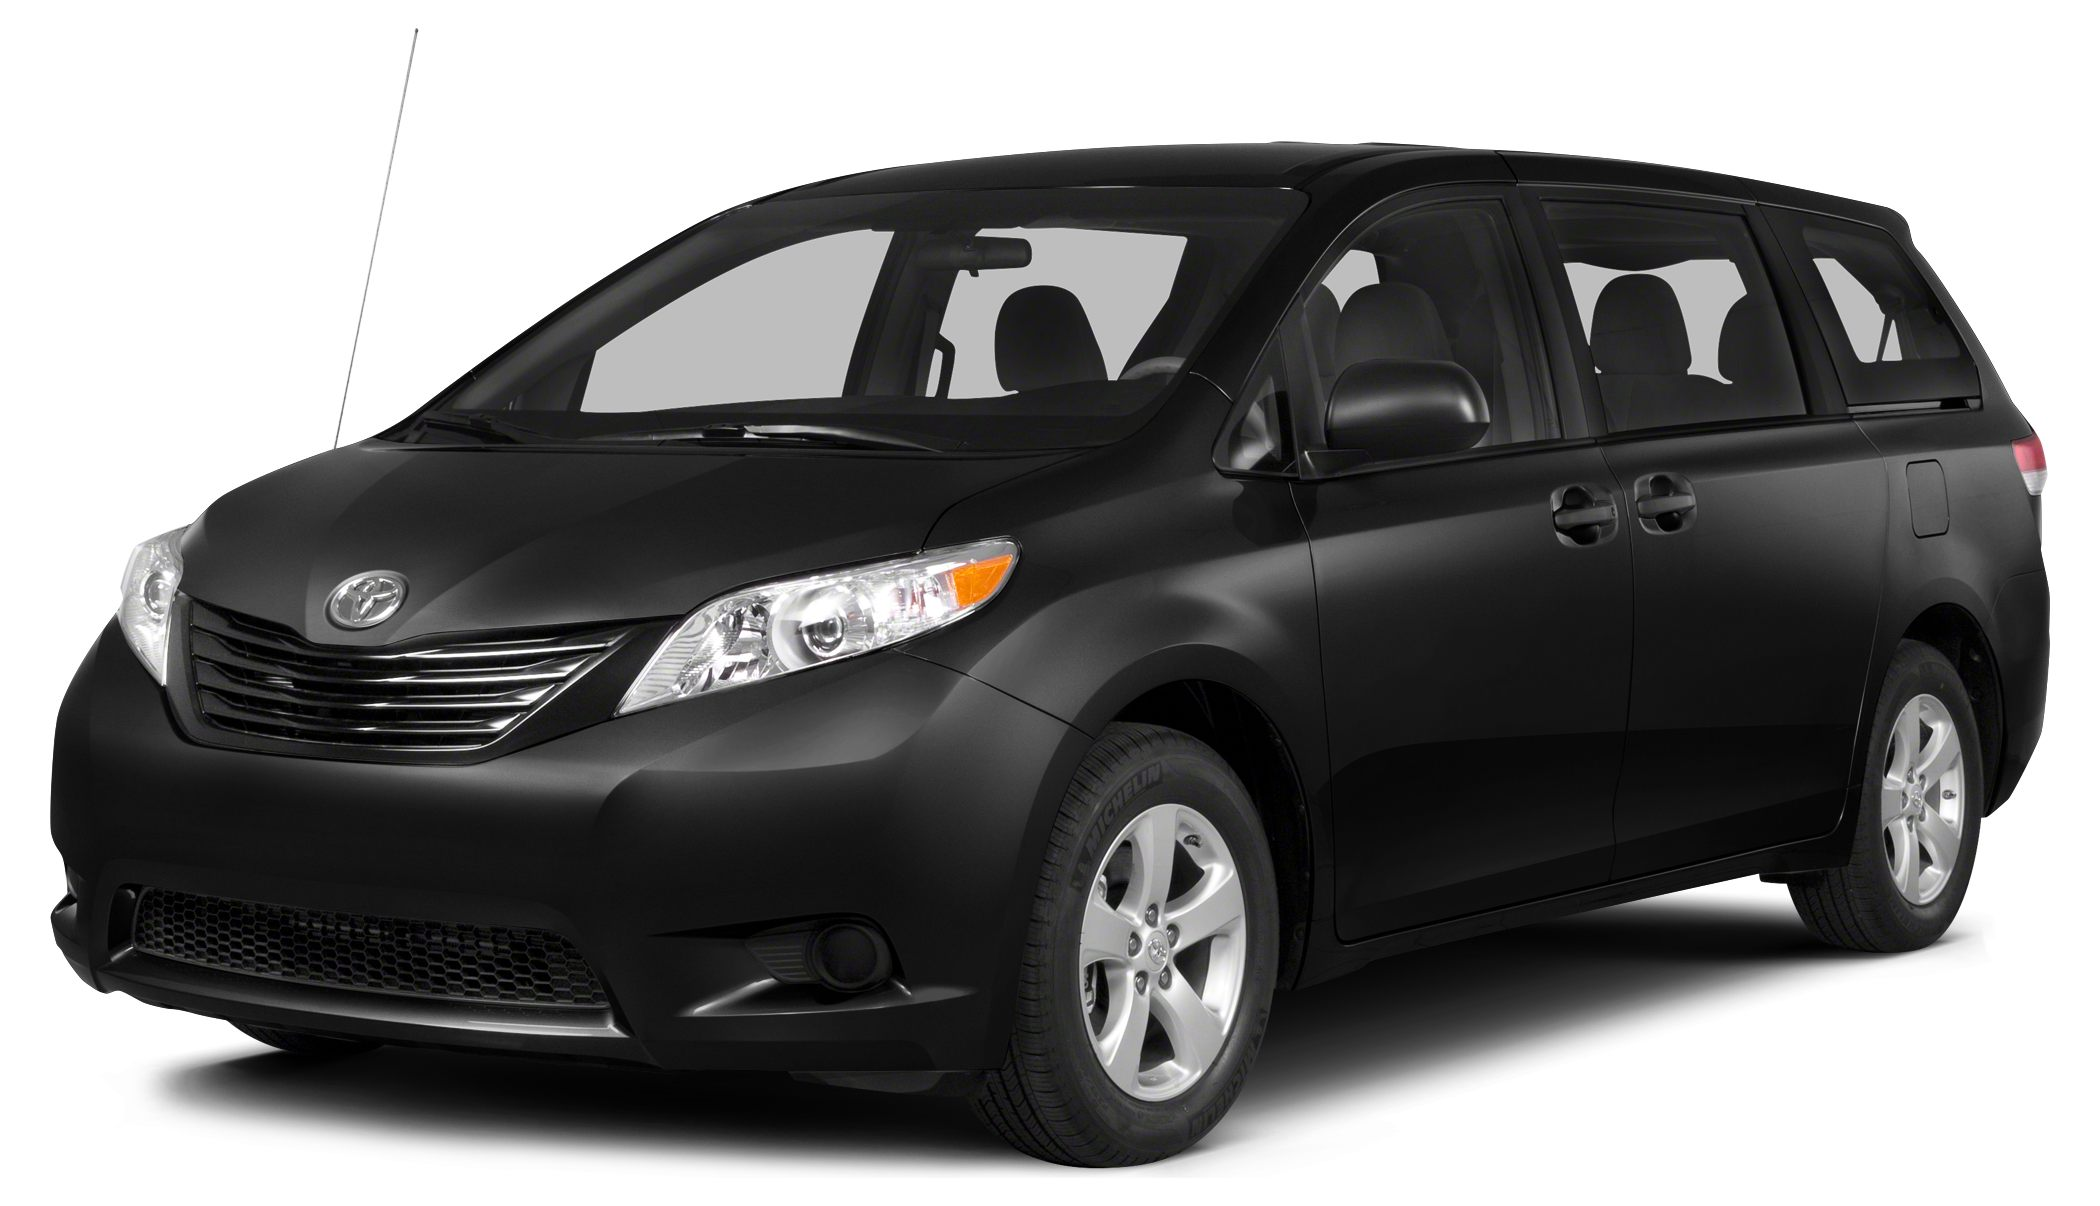 2014 Toyota Sienna LE 8 Passenger REDUCED FROM 23790 PRICED TO MOVE 1000 below Kelley Blue B